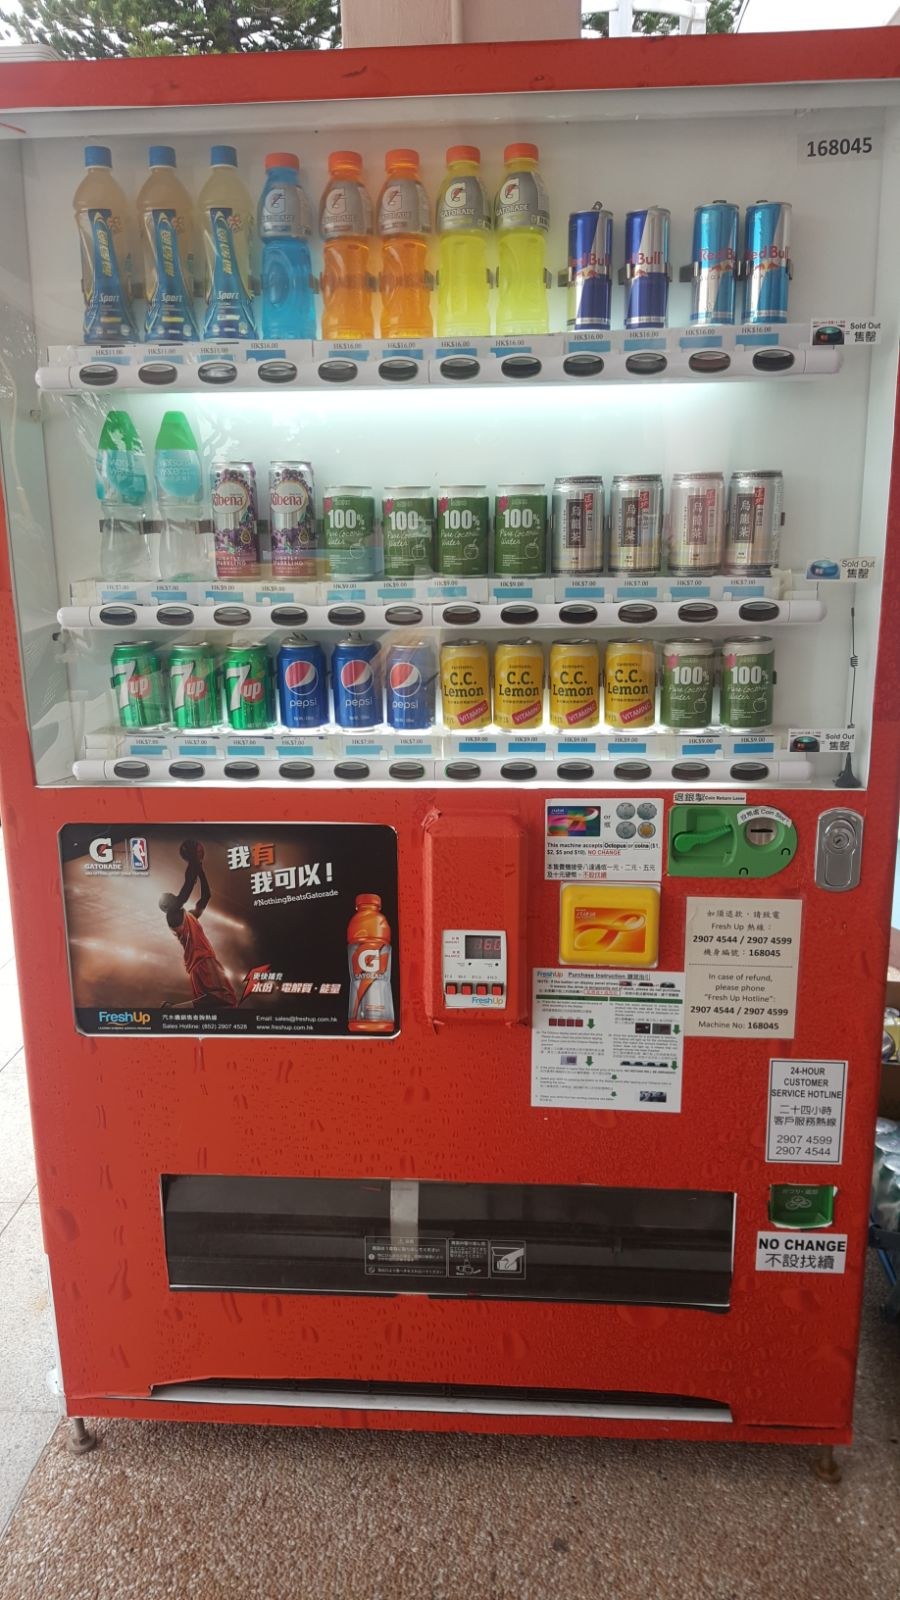 Freshup, vending machine hk, food, beverage, smart retail, convenient, vending services, LCSD